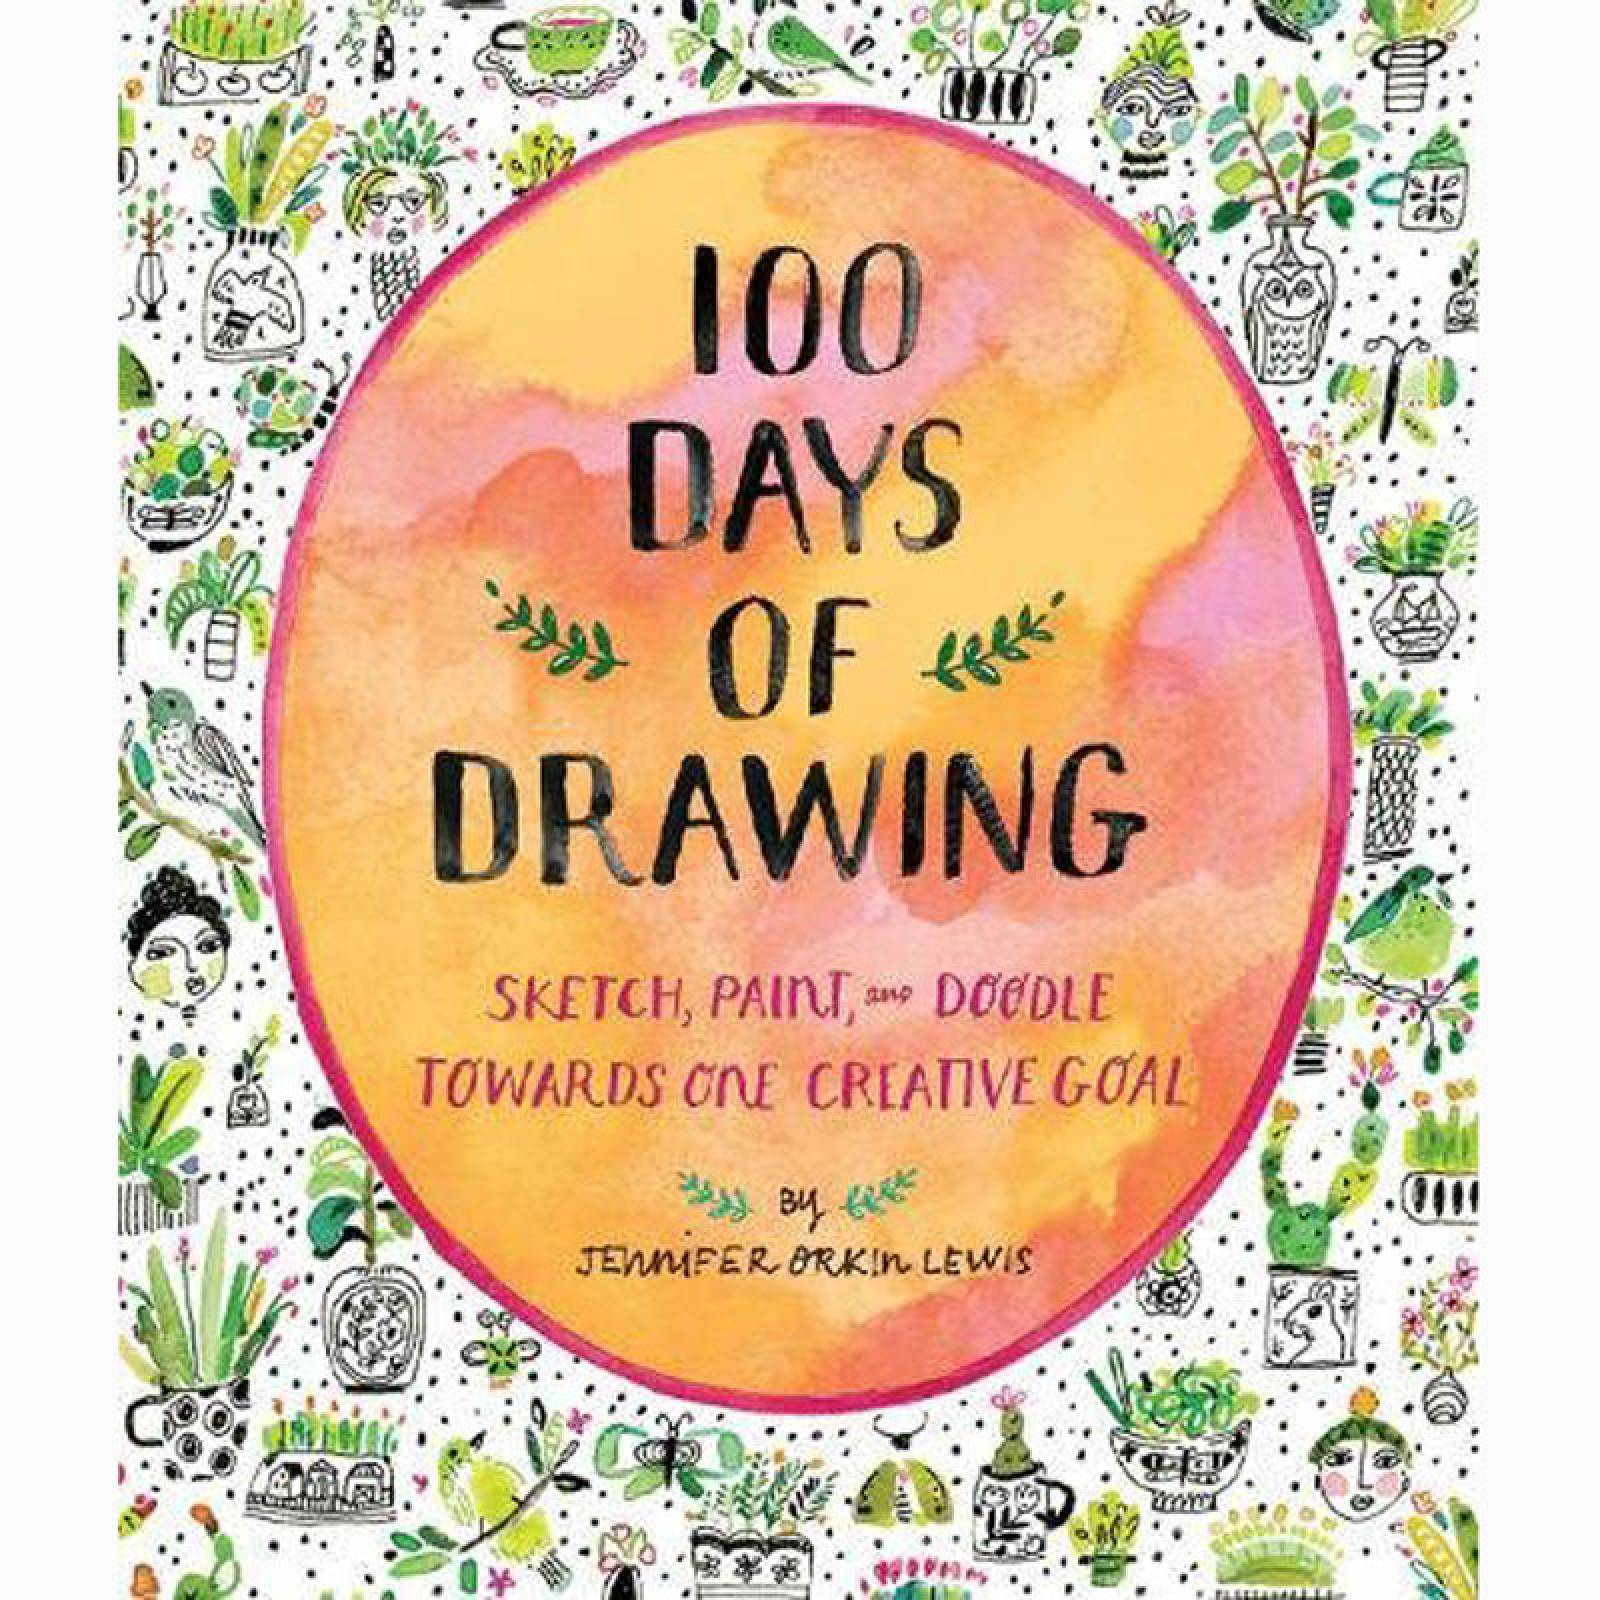 100 Days Of Drawing - Paperback Book thumbnails